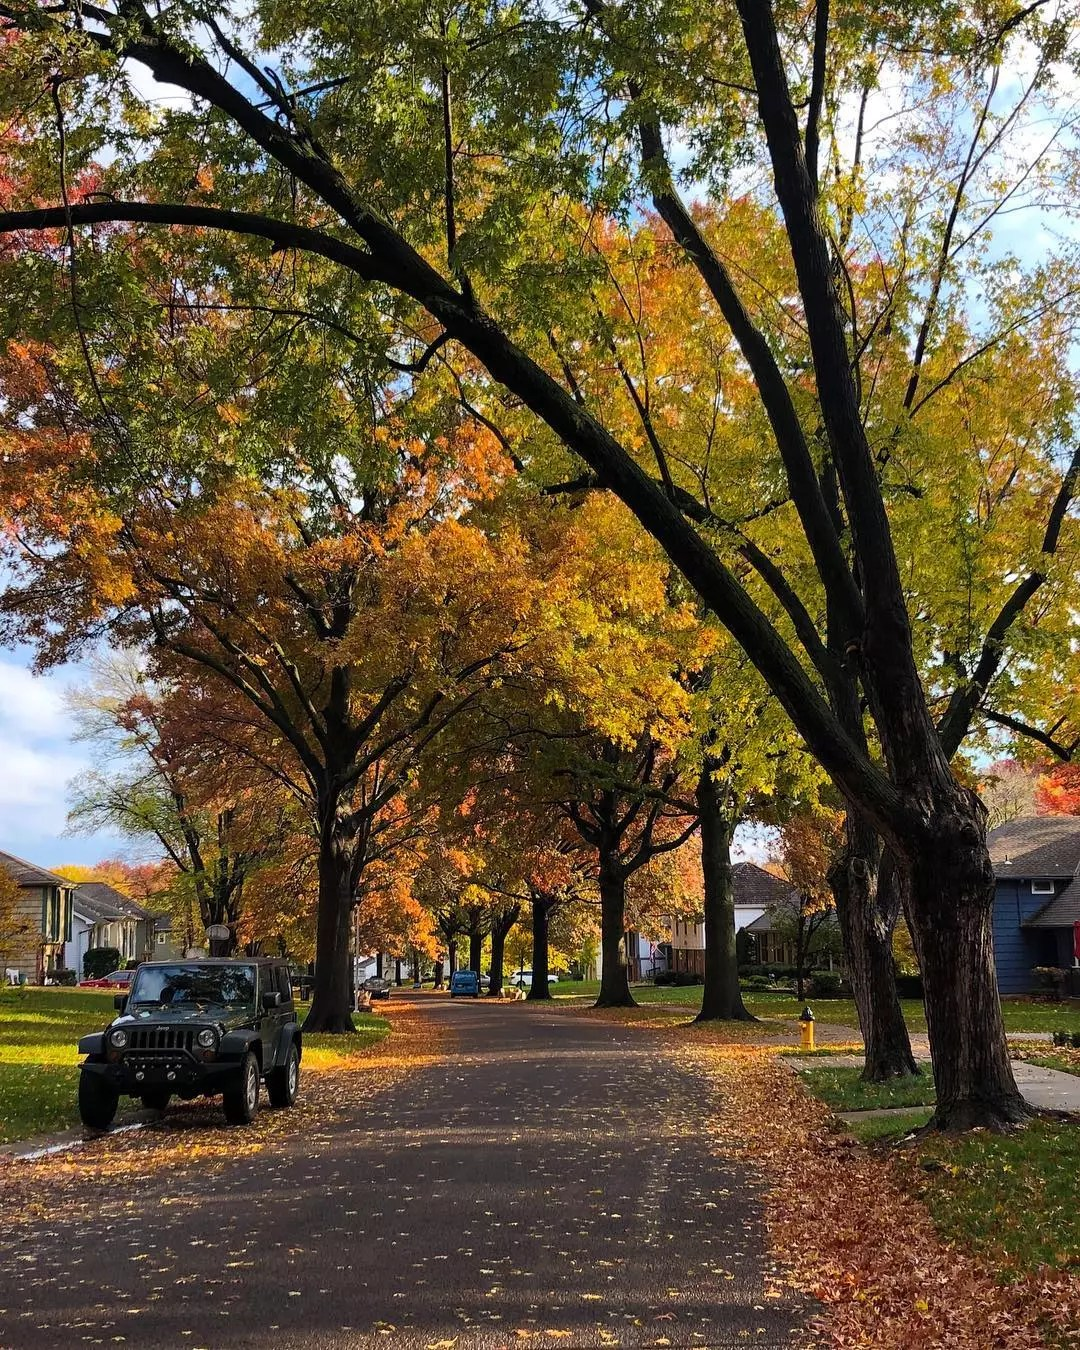 Trees dropping leaves on street in Overland Park photo by Instagram user @katie_minion